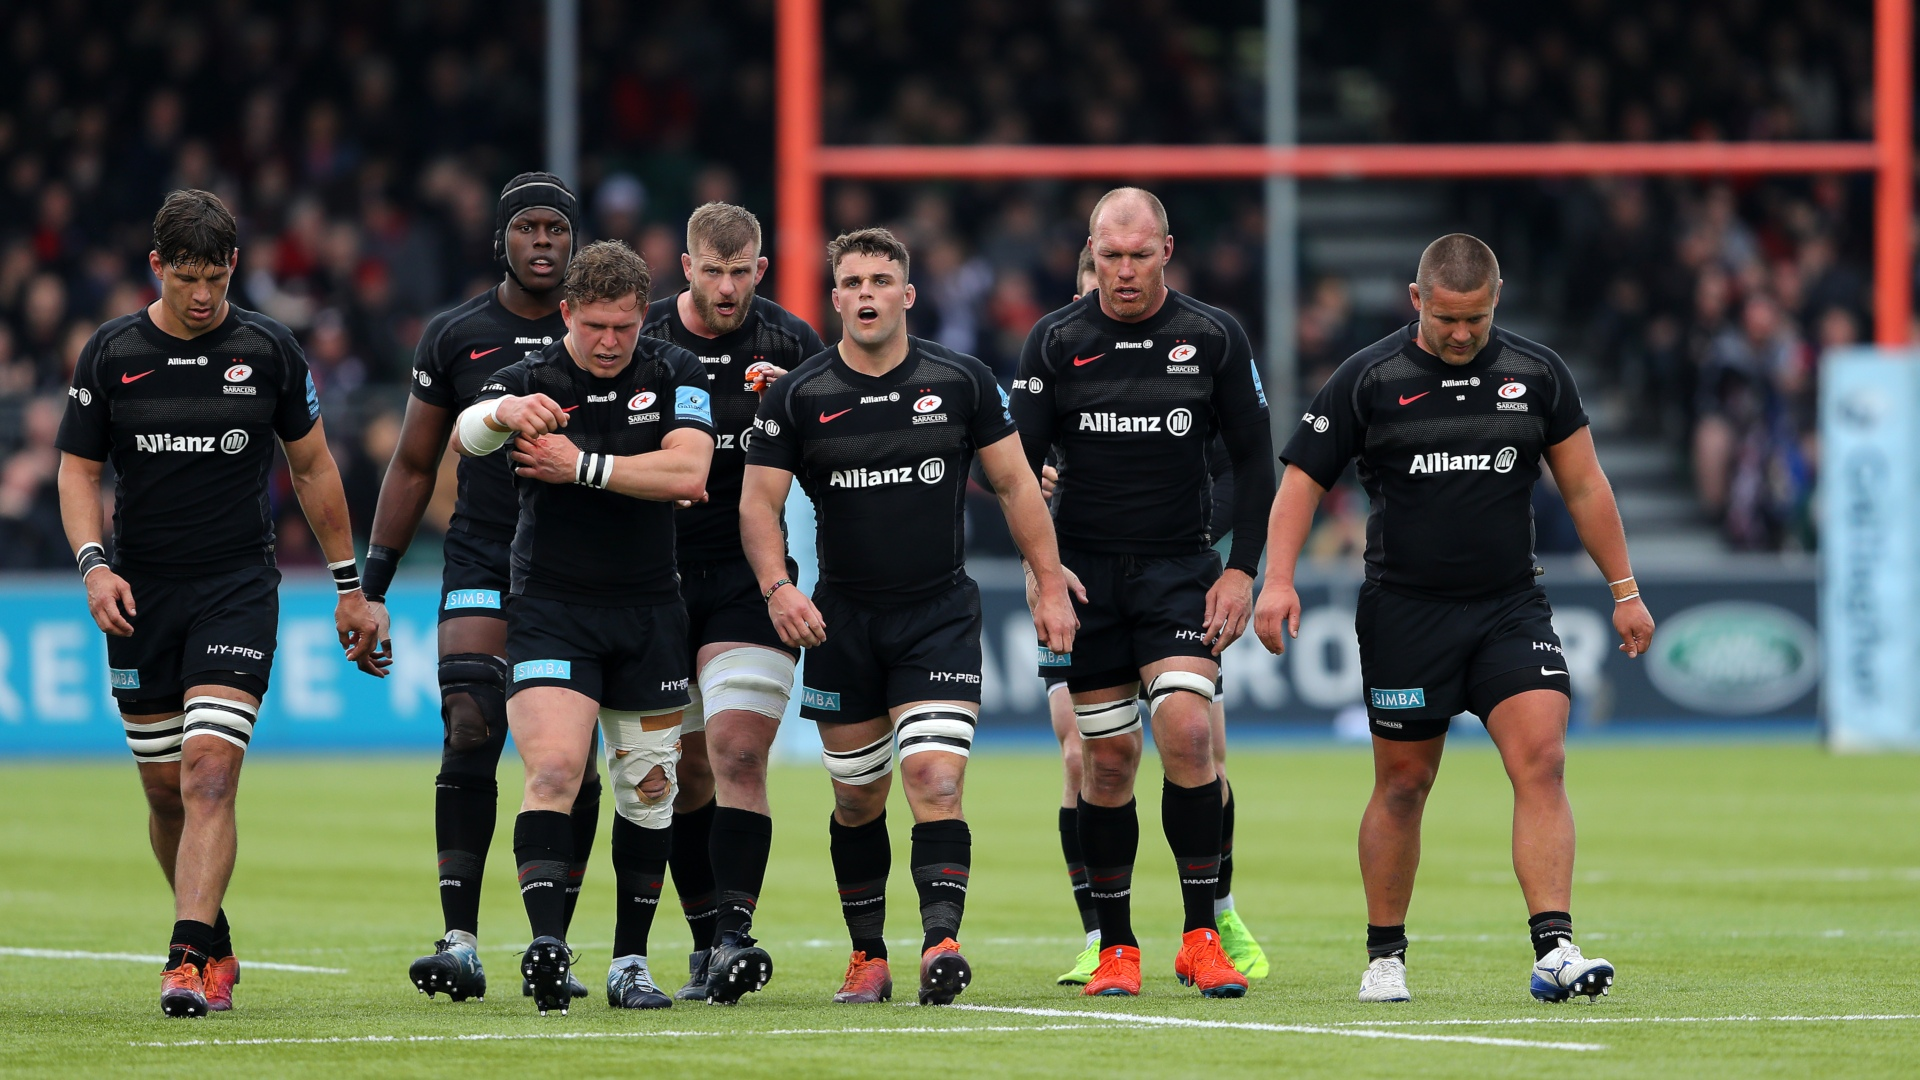 Le club de Saracens très lourdement sanctionné — Masse salariale